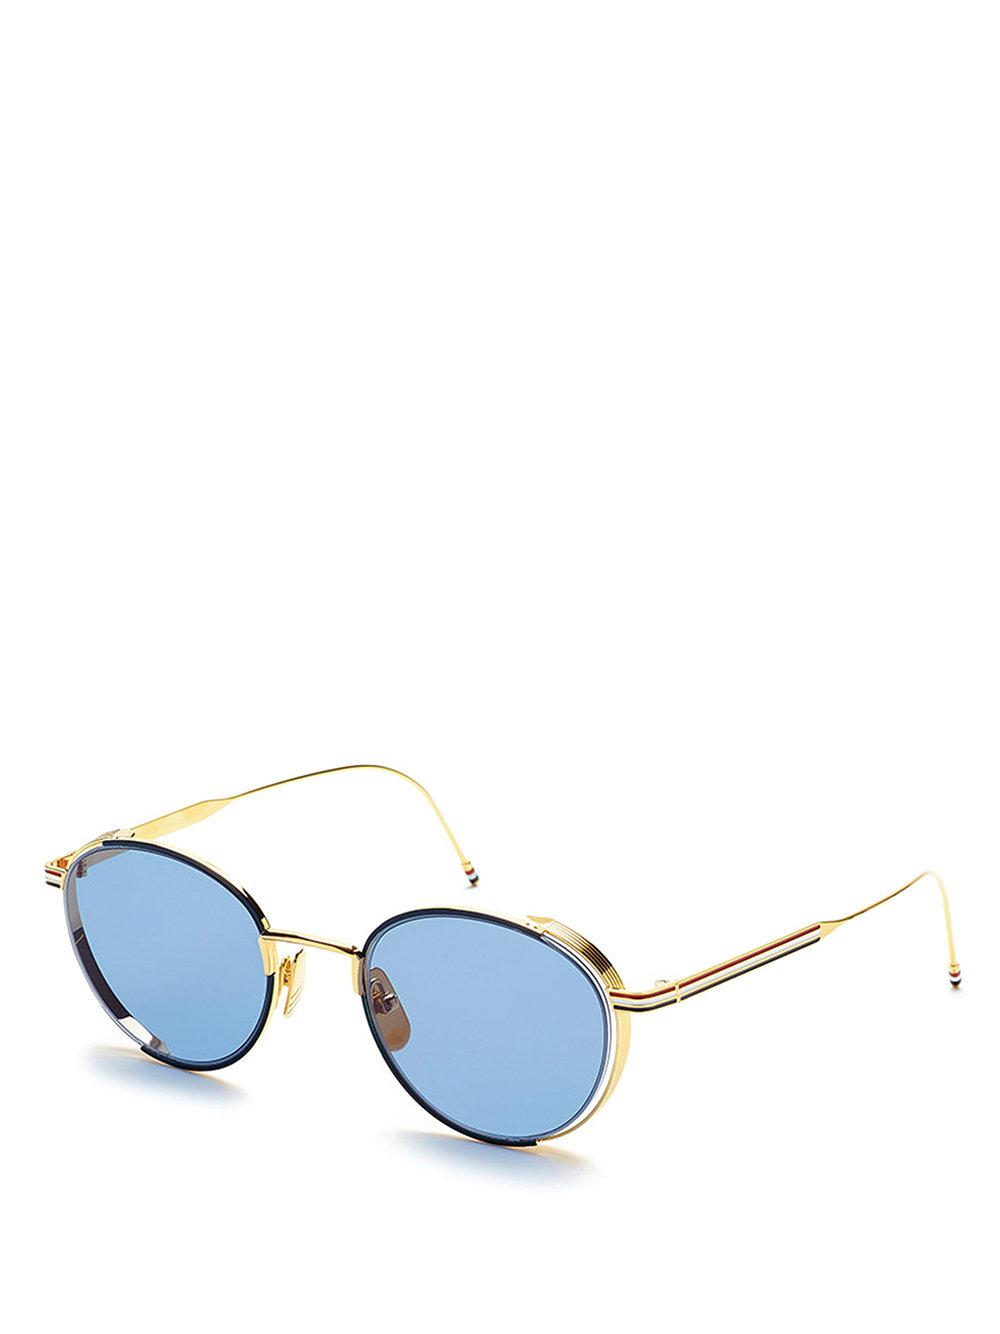 Navy Enamel & 18k Gold Sunglasses - Blue Thom Browne fsZDGK8nT